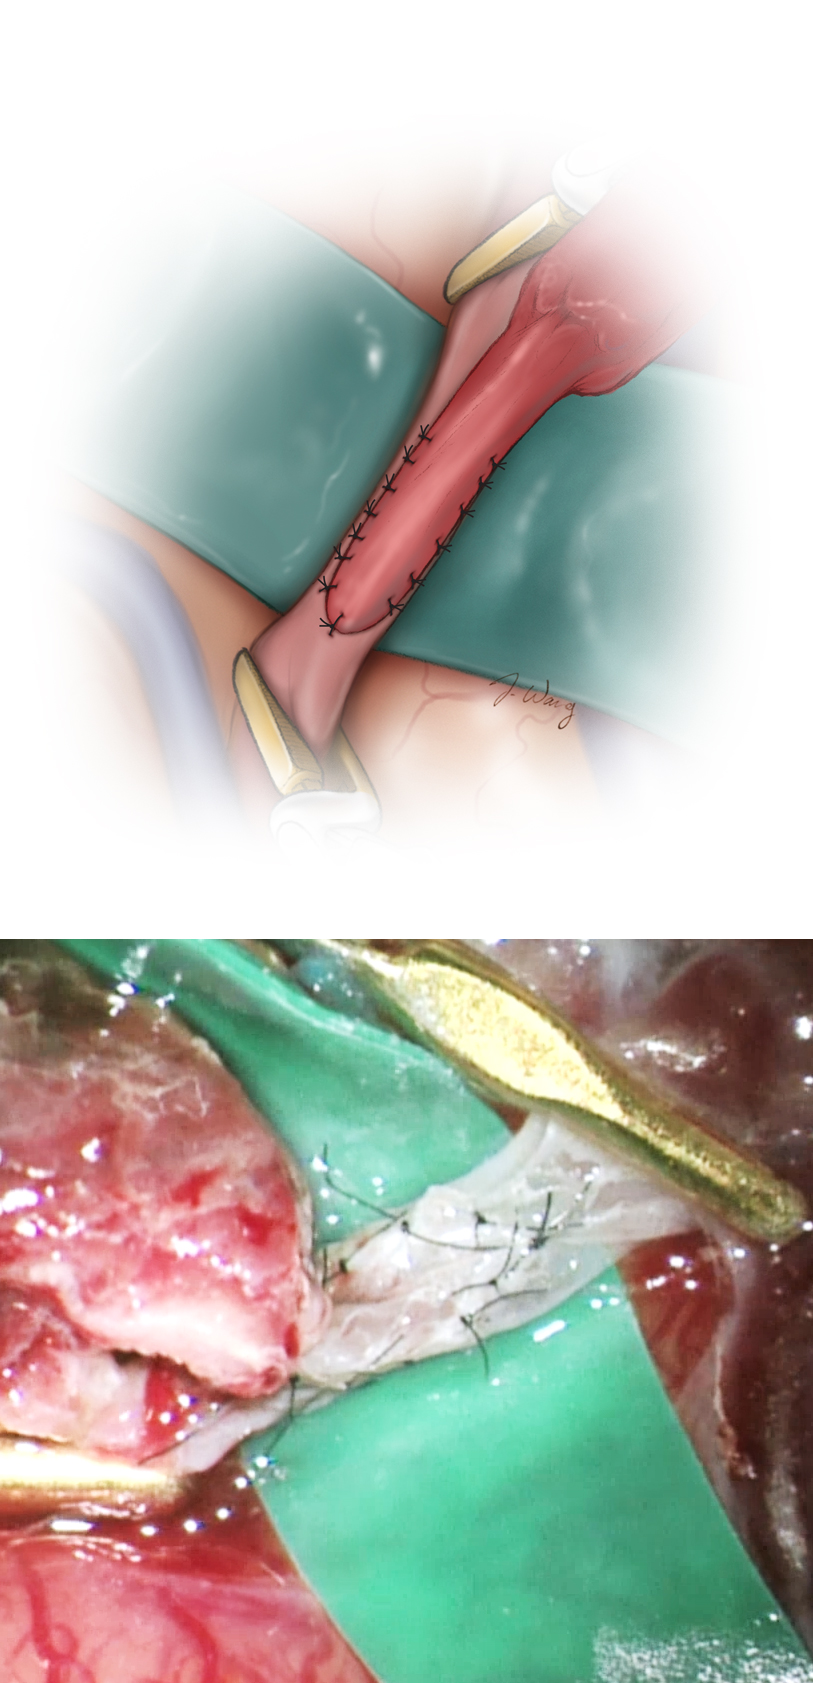 Figure 11: I prefer the use of interrupted sutures during the STA-MCA revascularization to minimize the risk of kinking within the anastomosis, which is possible with a running-suturing technique. However, the interrupted technique requires a longer period of clamping for its execution. The donor vessel should lay on the brain surface under no tension and remain untwisted.